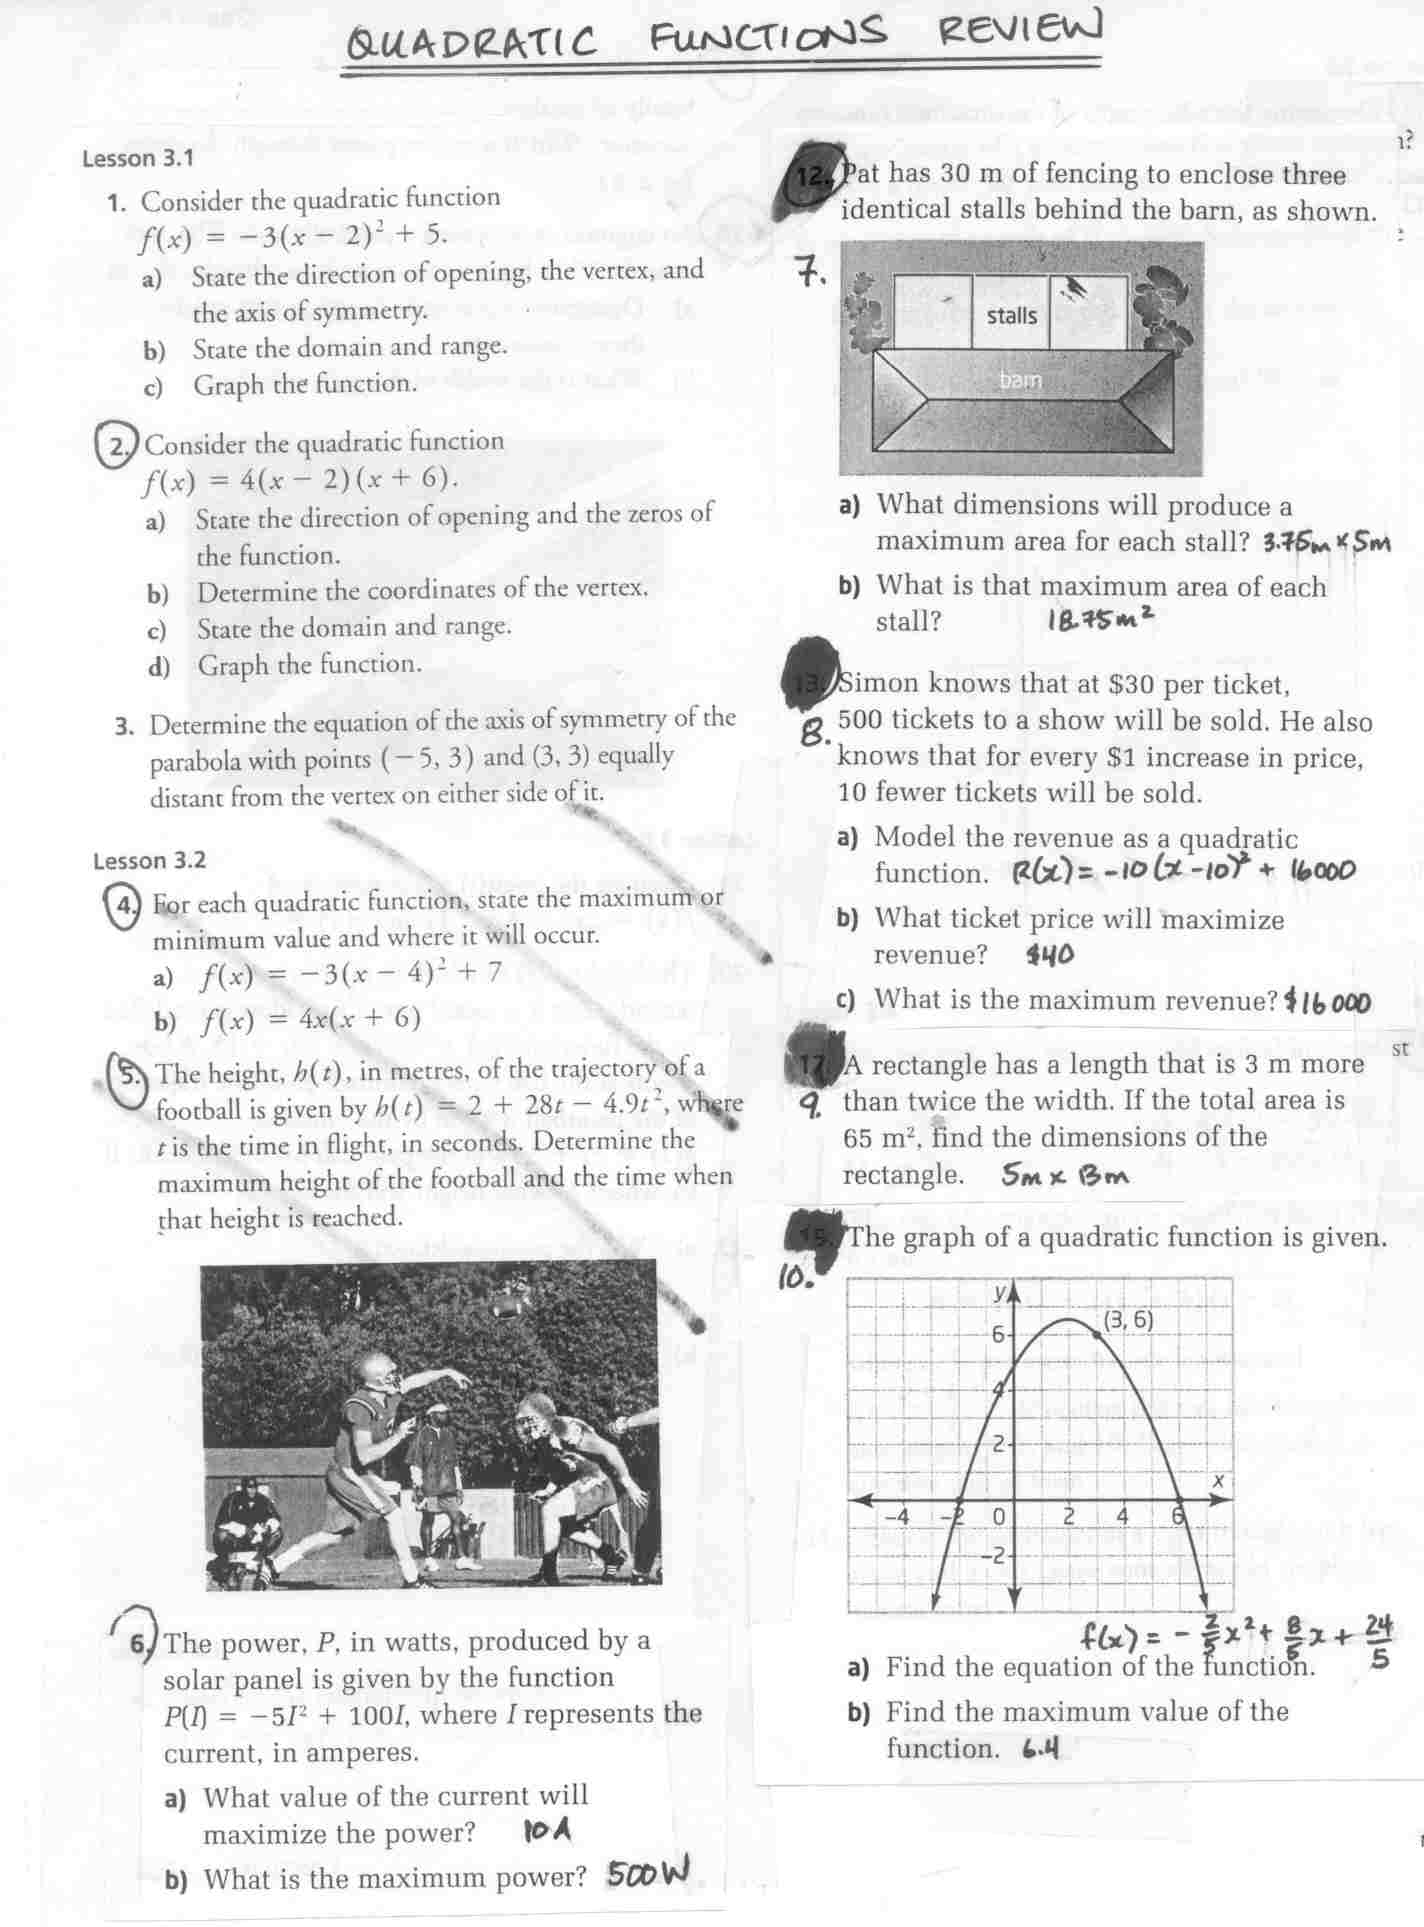 mackenziekim MCR 3U Functions Grade 11 University Fall 2009 – Transformations of Quadratic Functions Worksheet